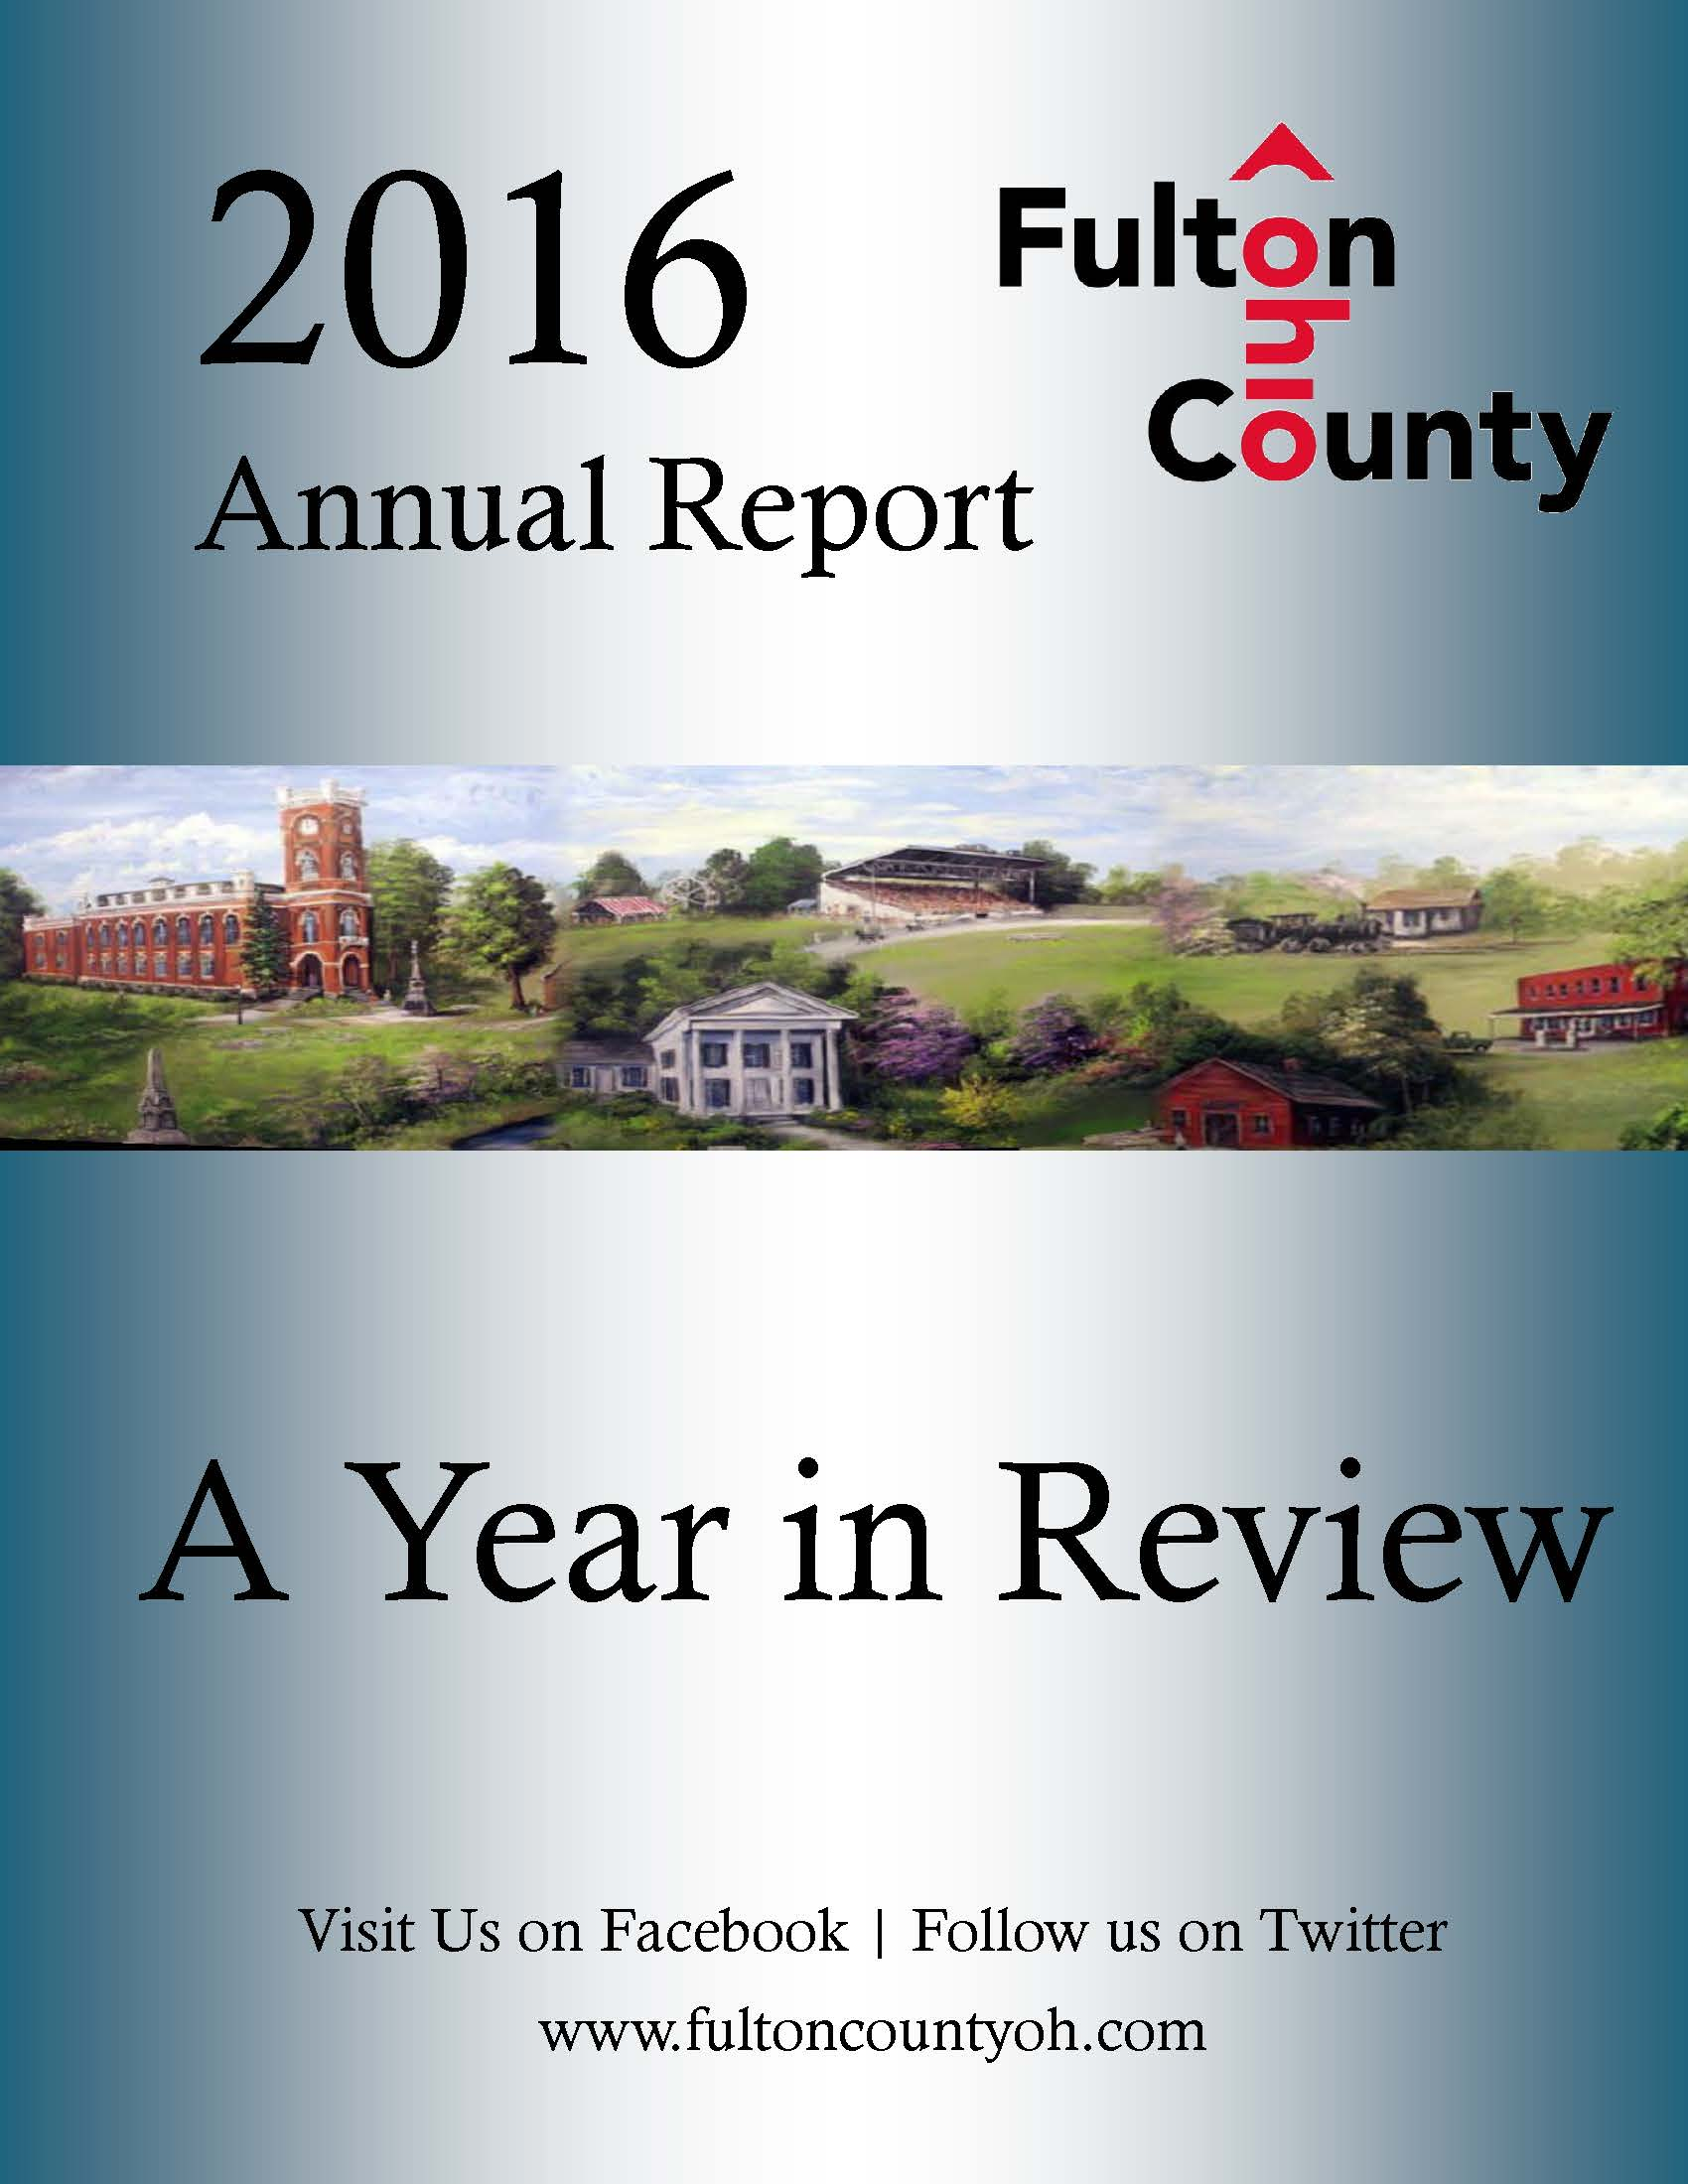 Annual Report Cover Photo Image